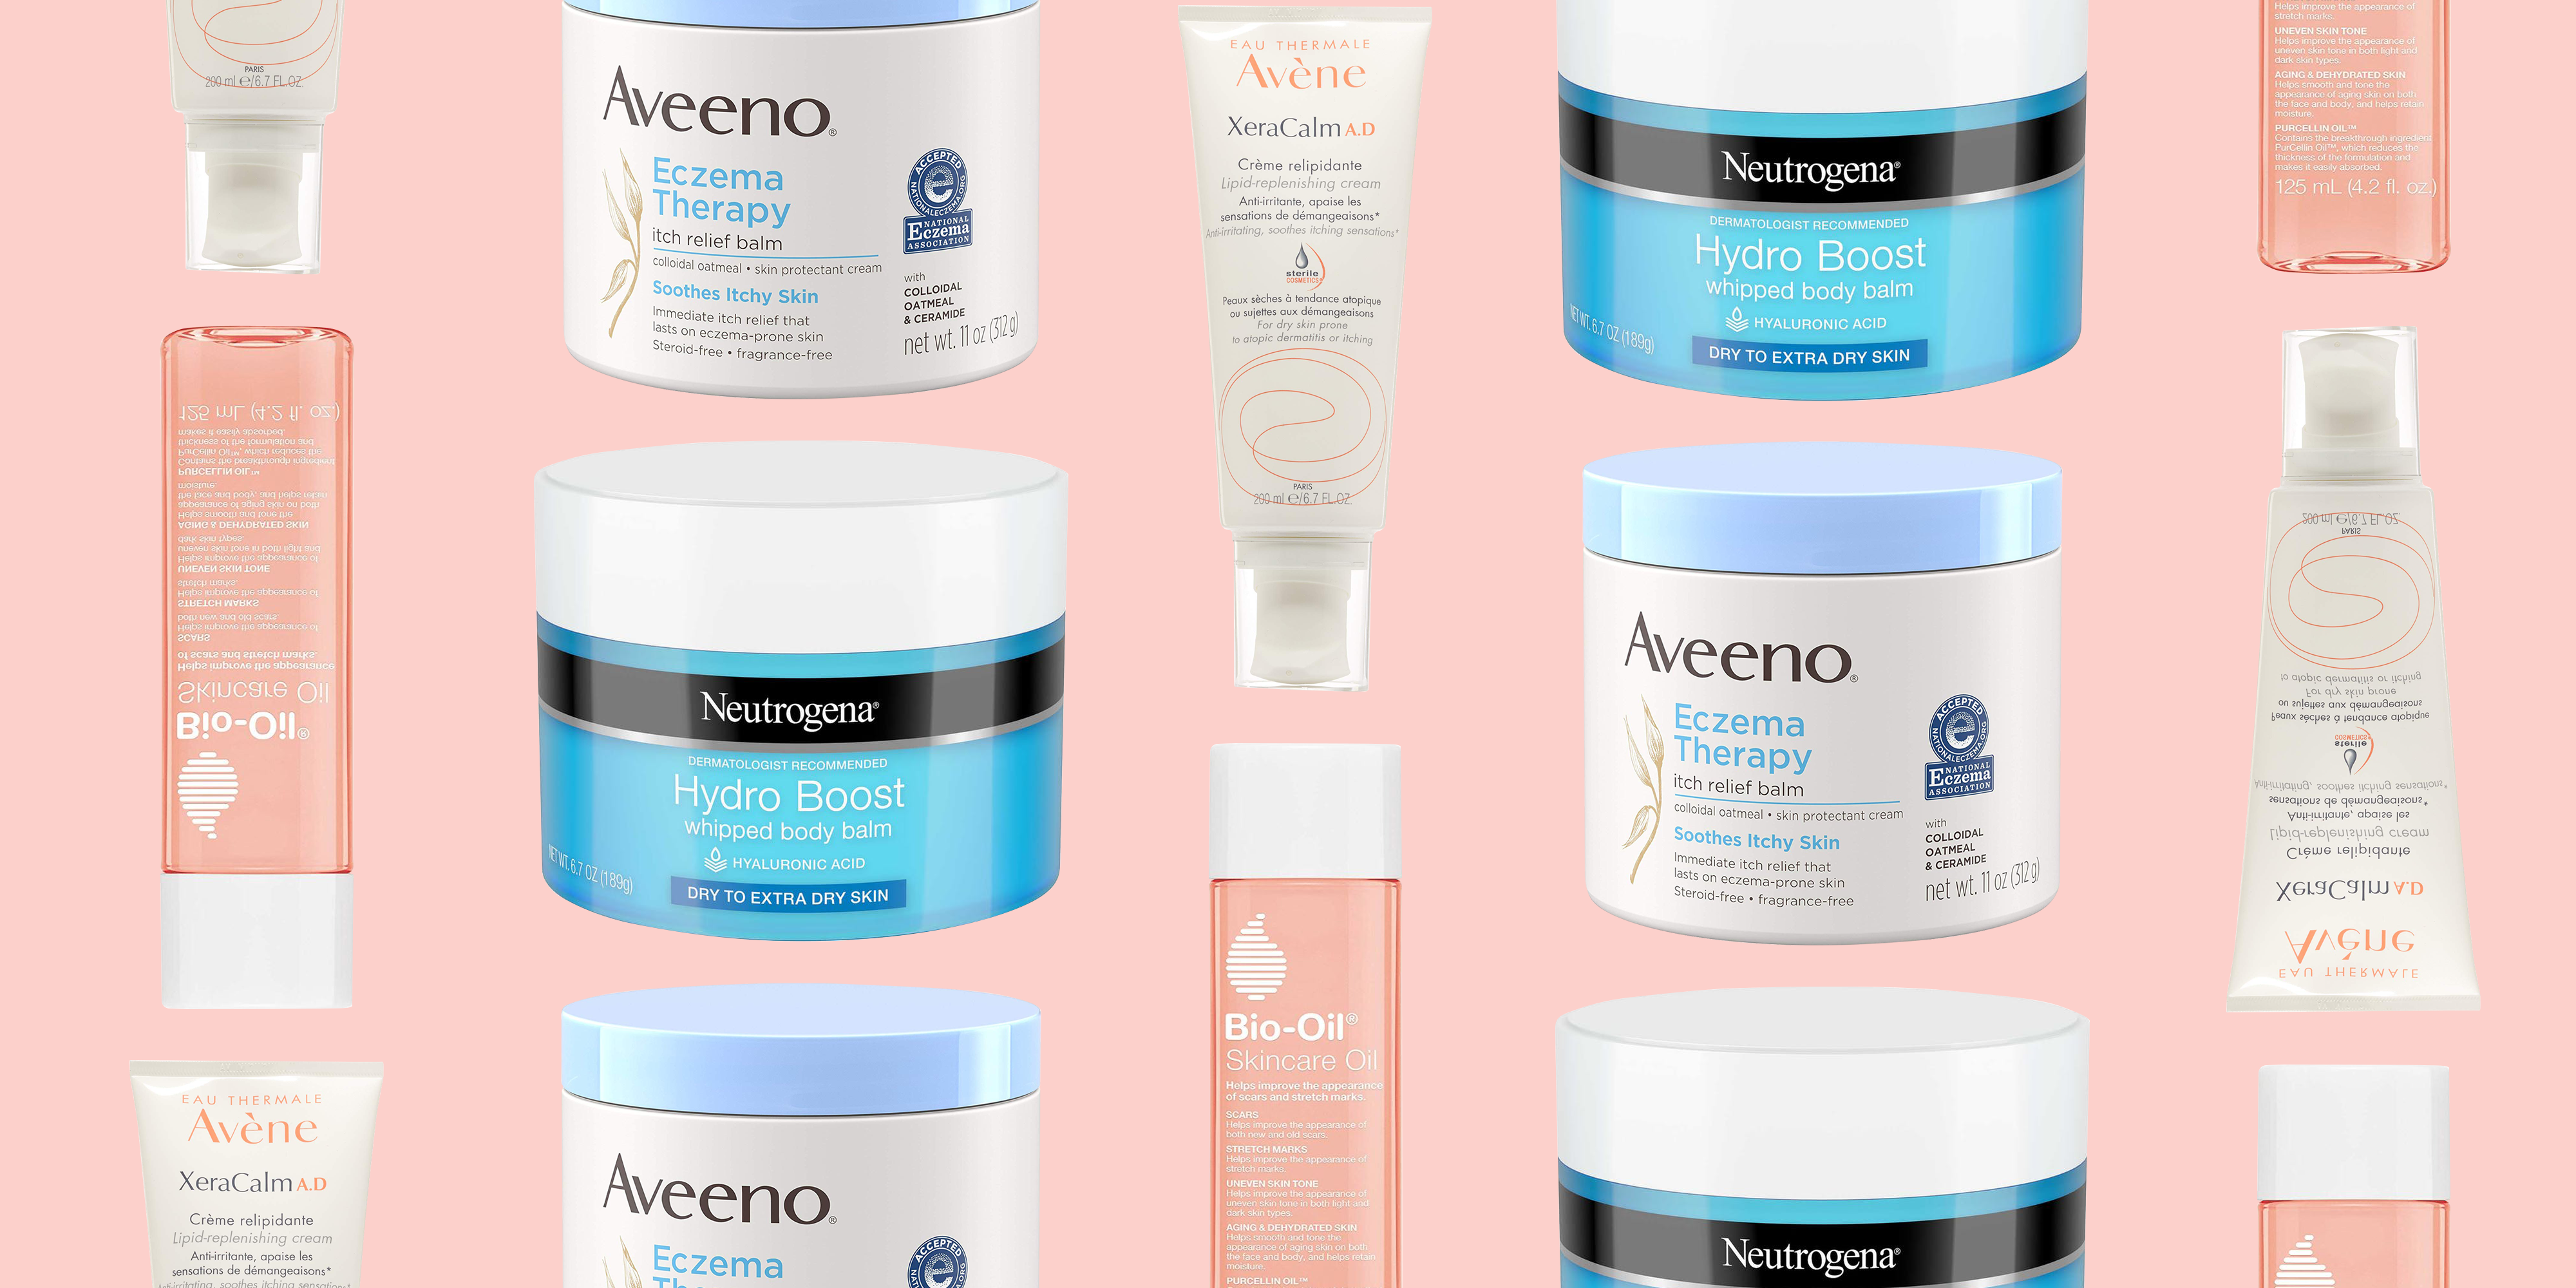 11 Best Lotions for Eczema - Best Creams for Dry, Itchy Skin